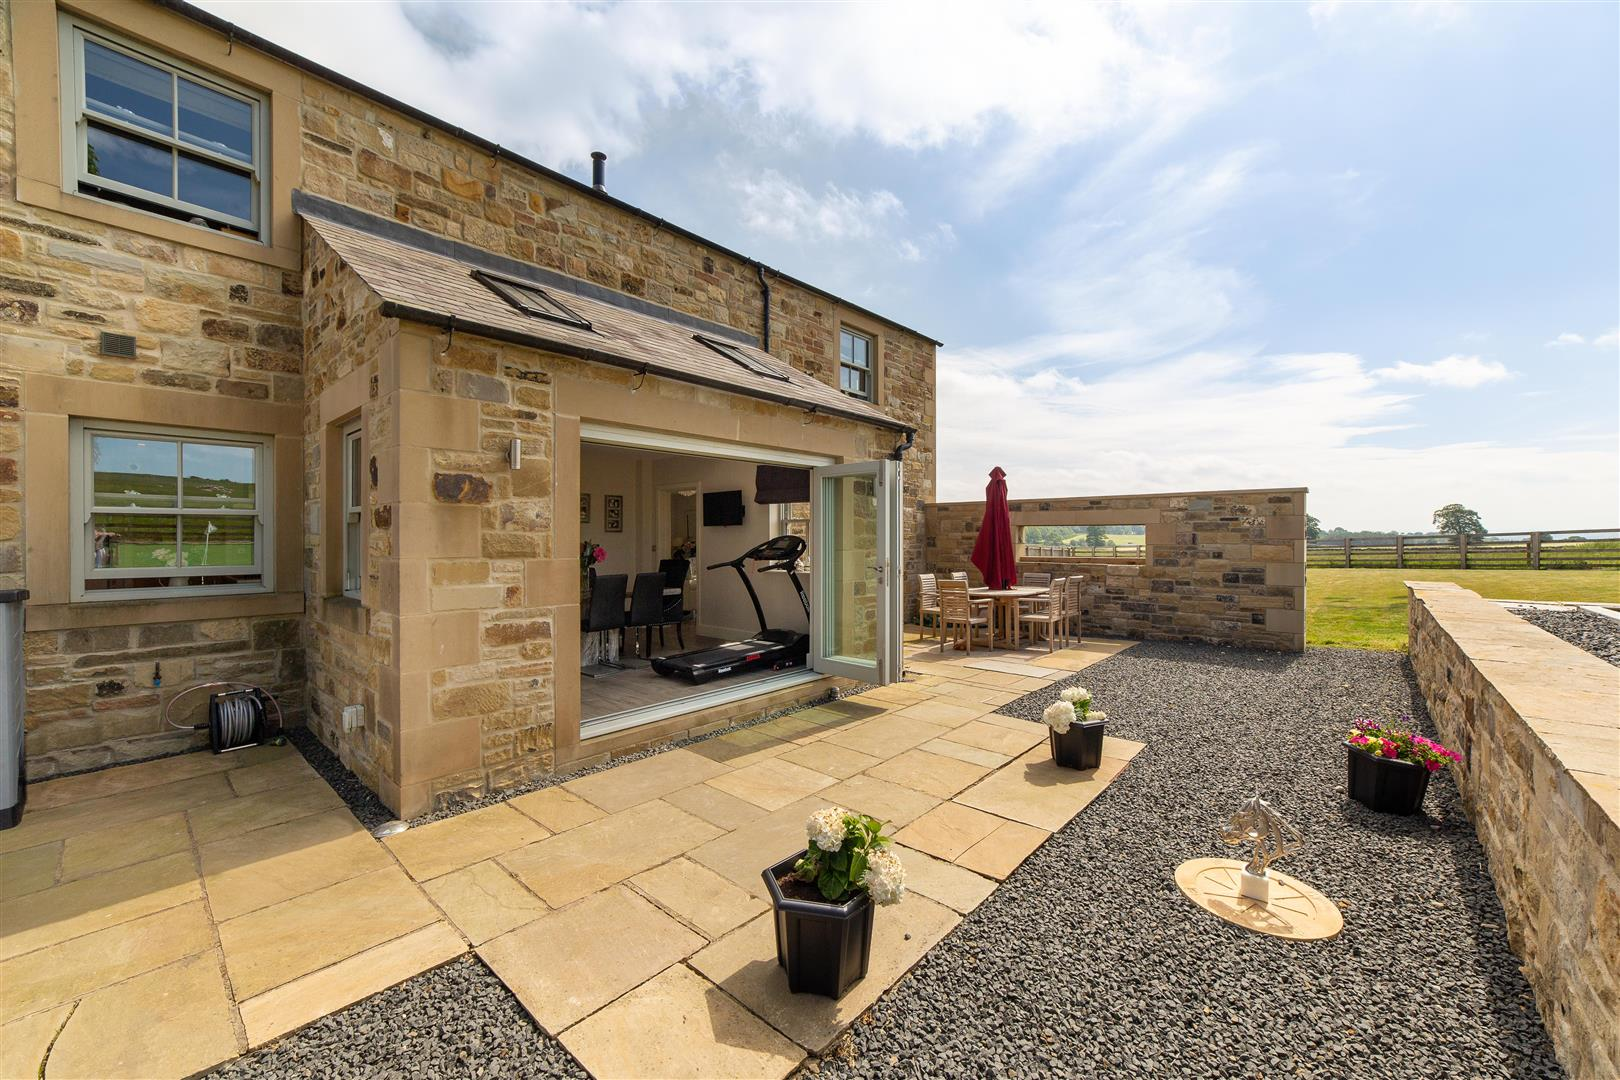 4 bed detached house for sale, Hexham 16